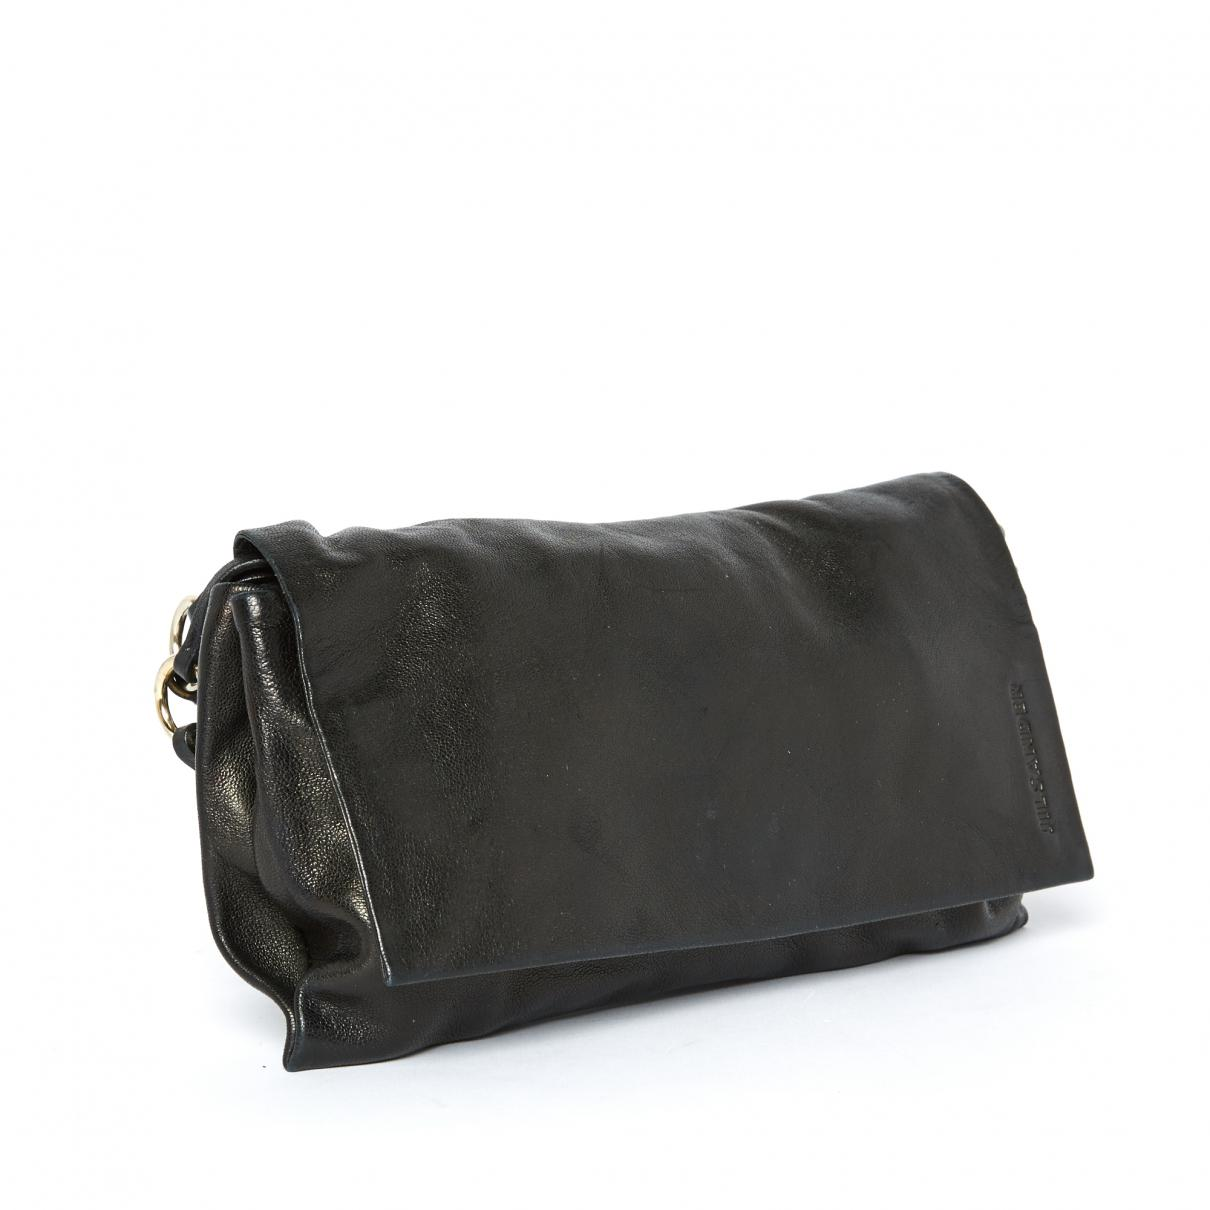 Jil Sander Pre-owned - LEATHER CLUTCH PURSE 7klHa